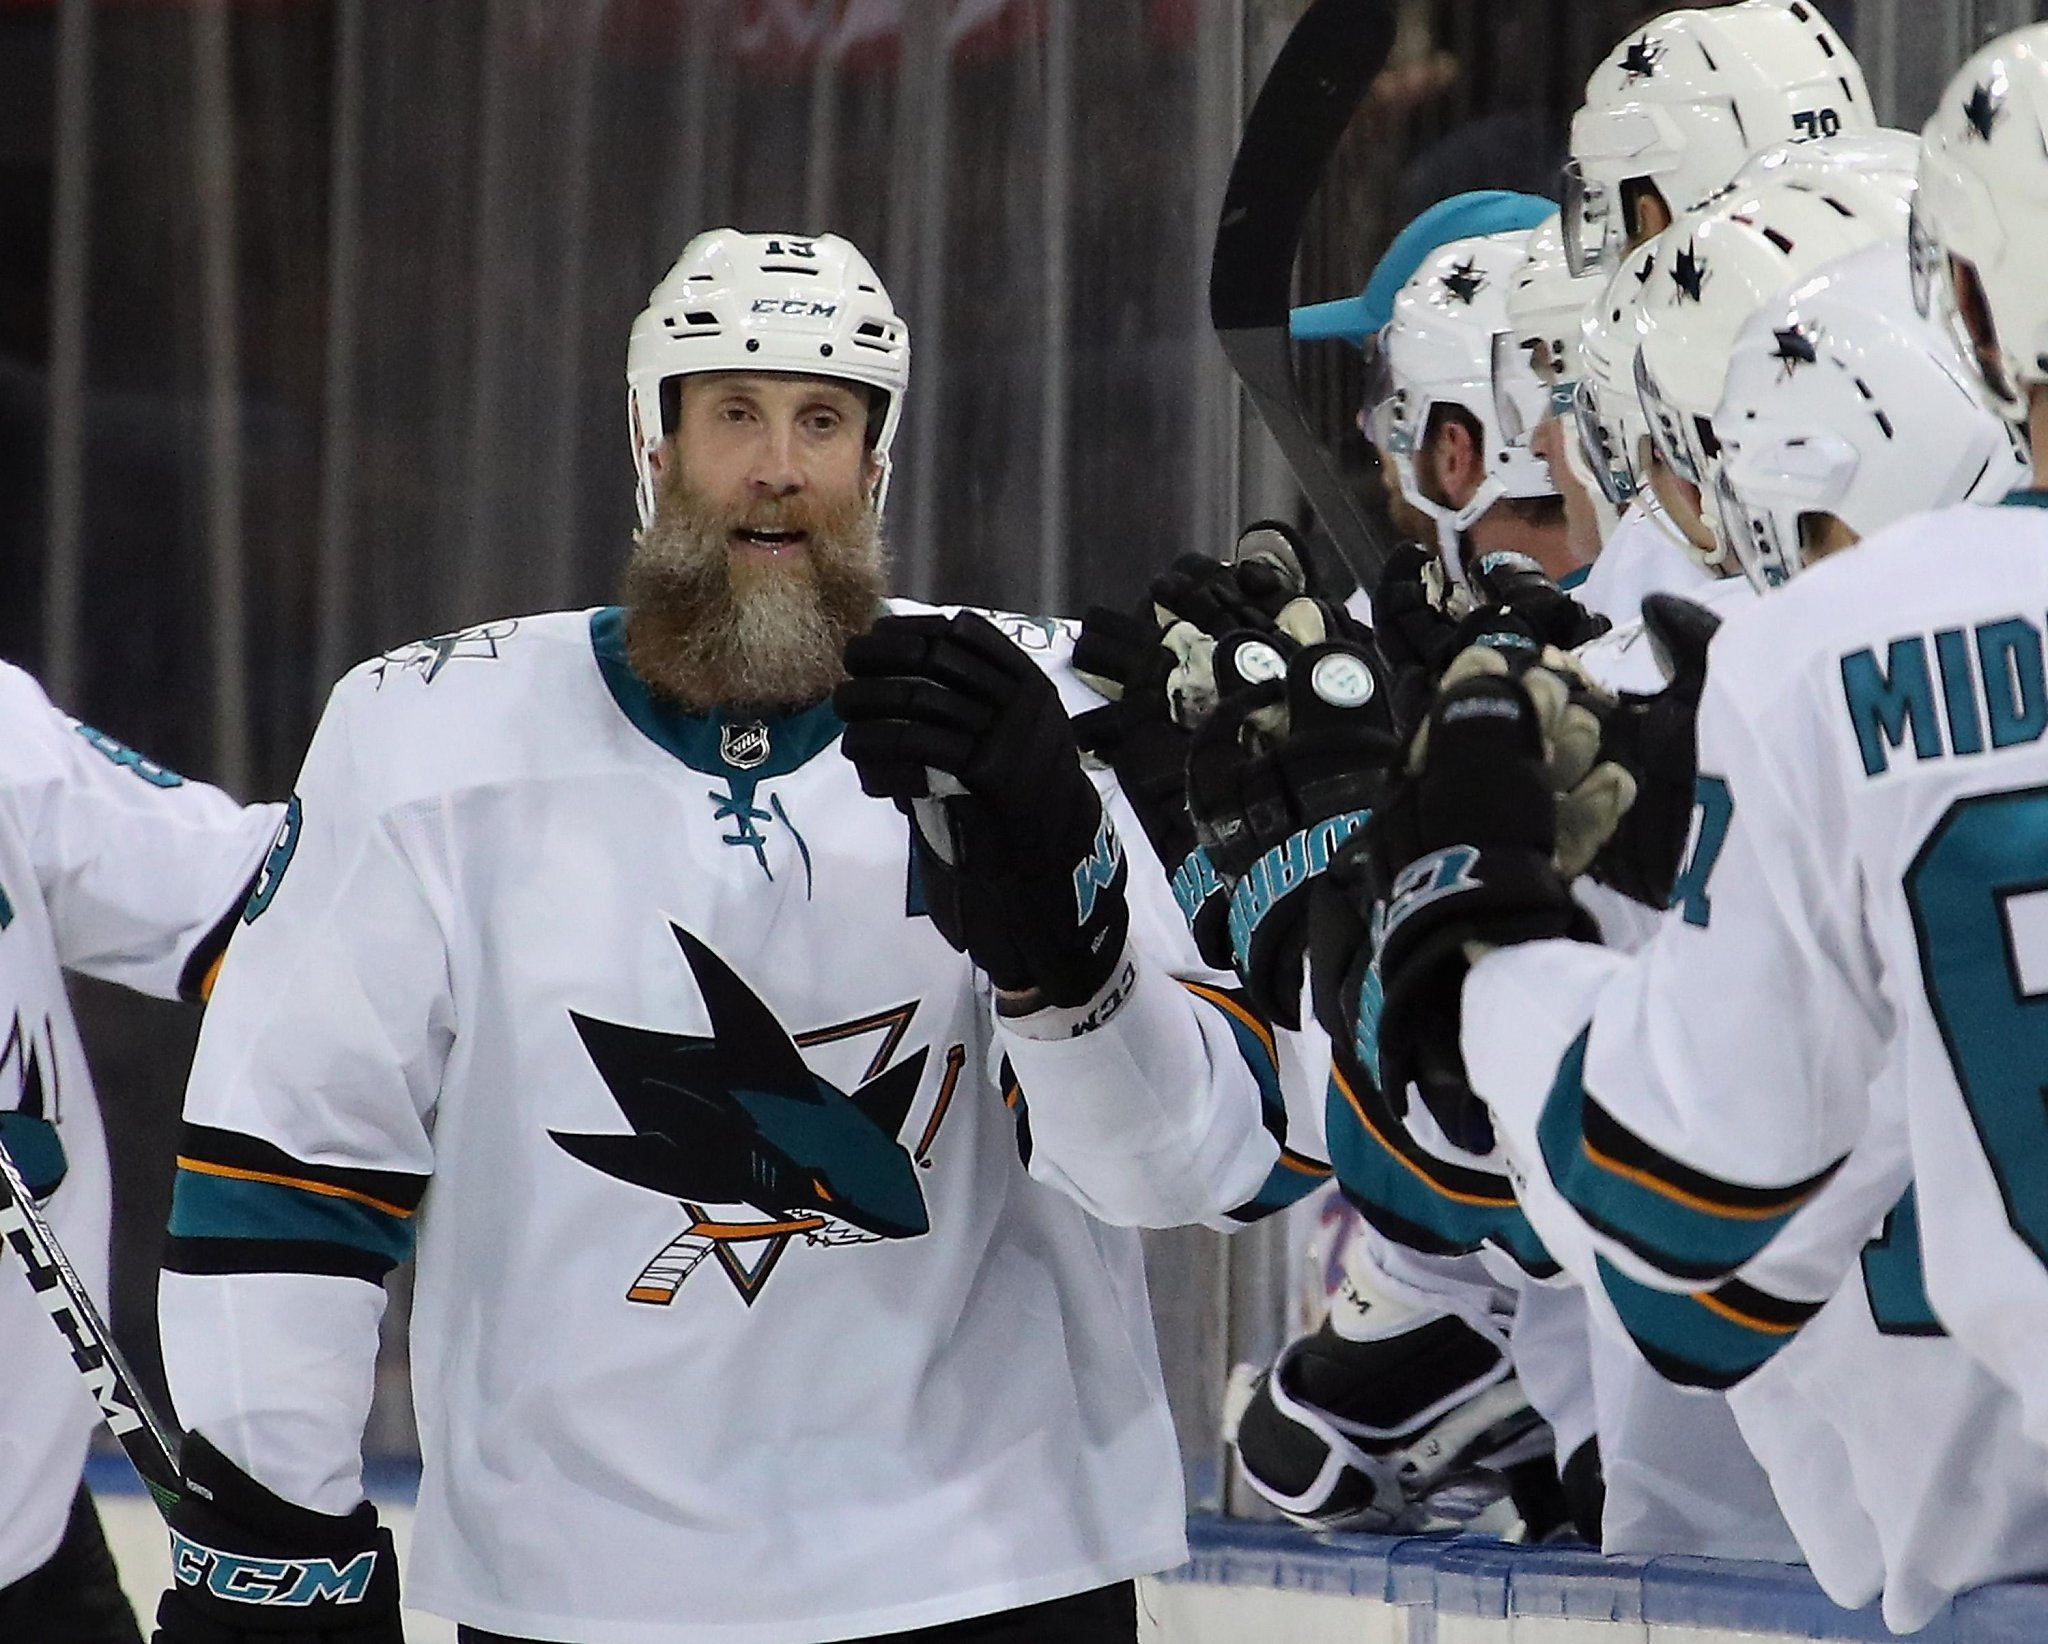 Joe Thornton scores twice but Sharks fall to Rangers